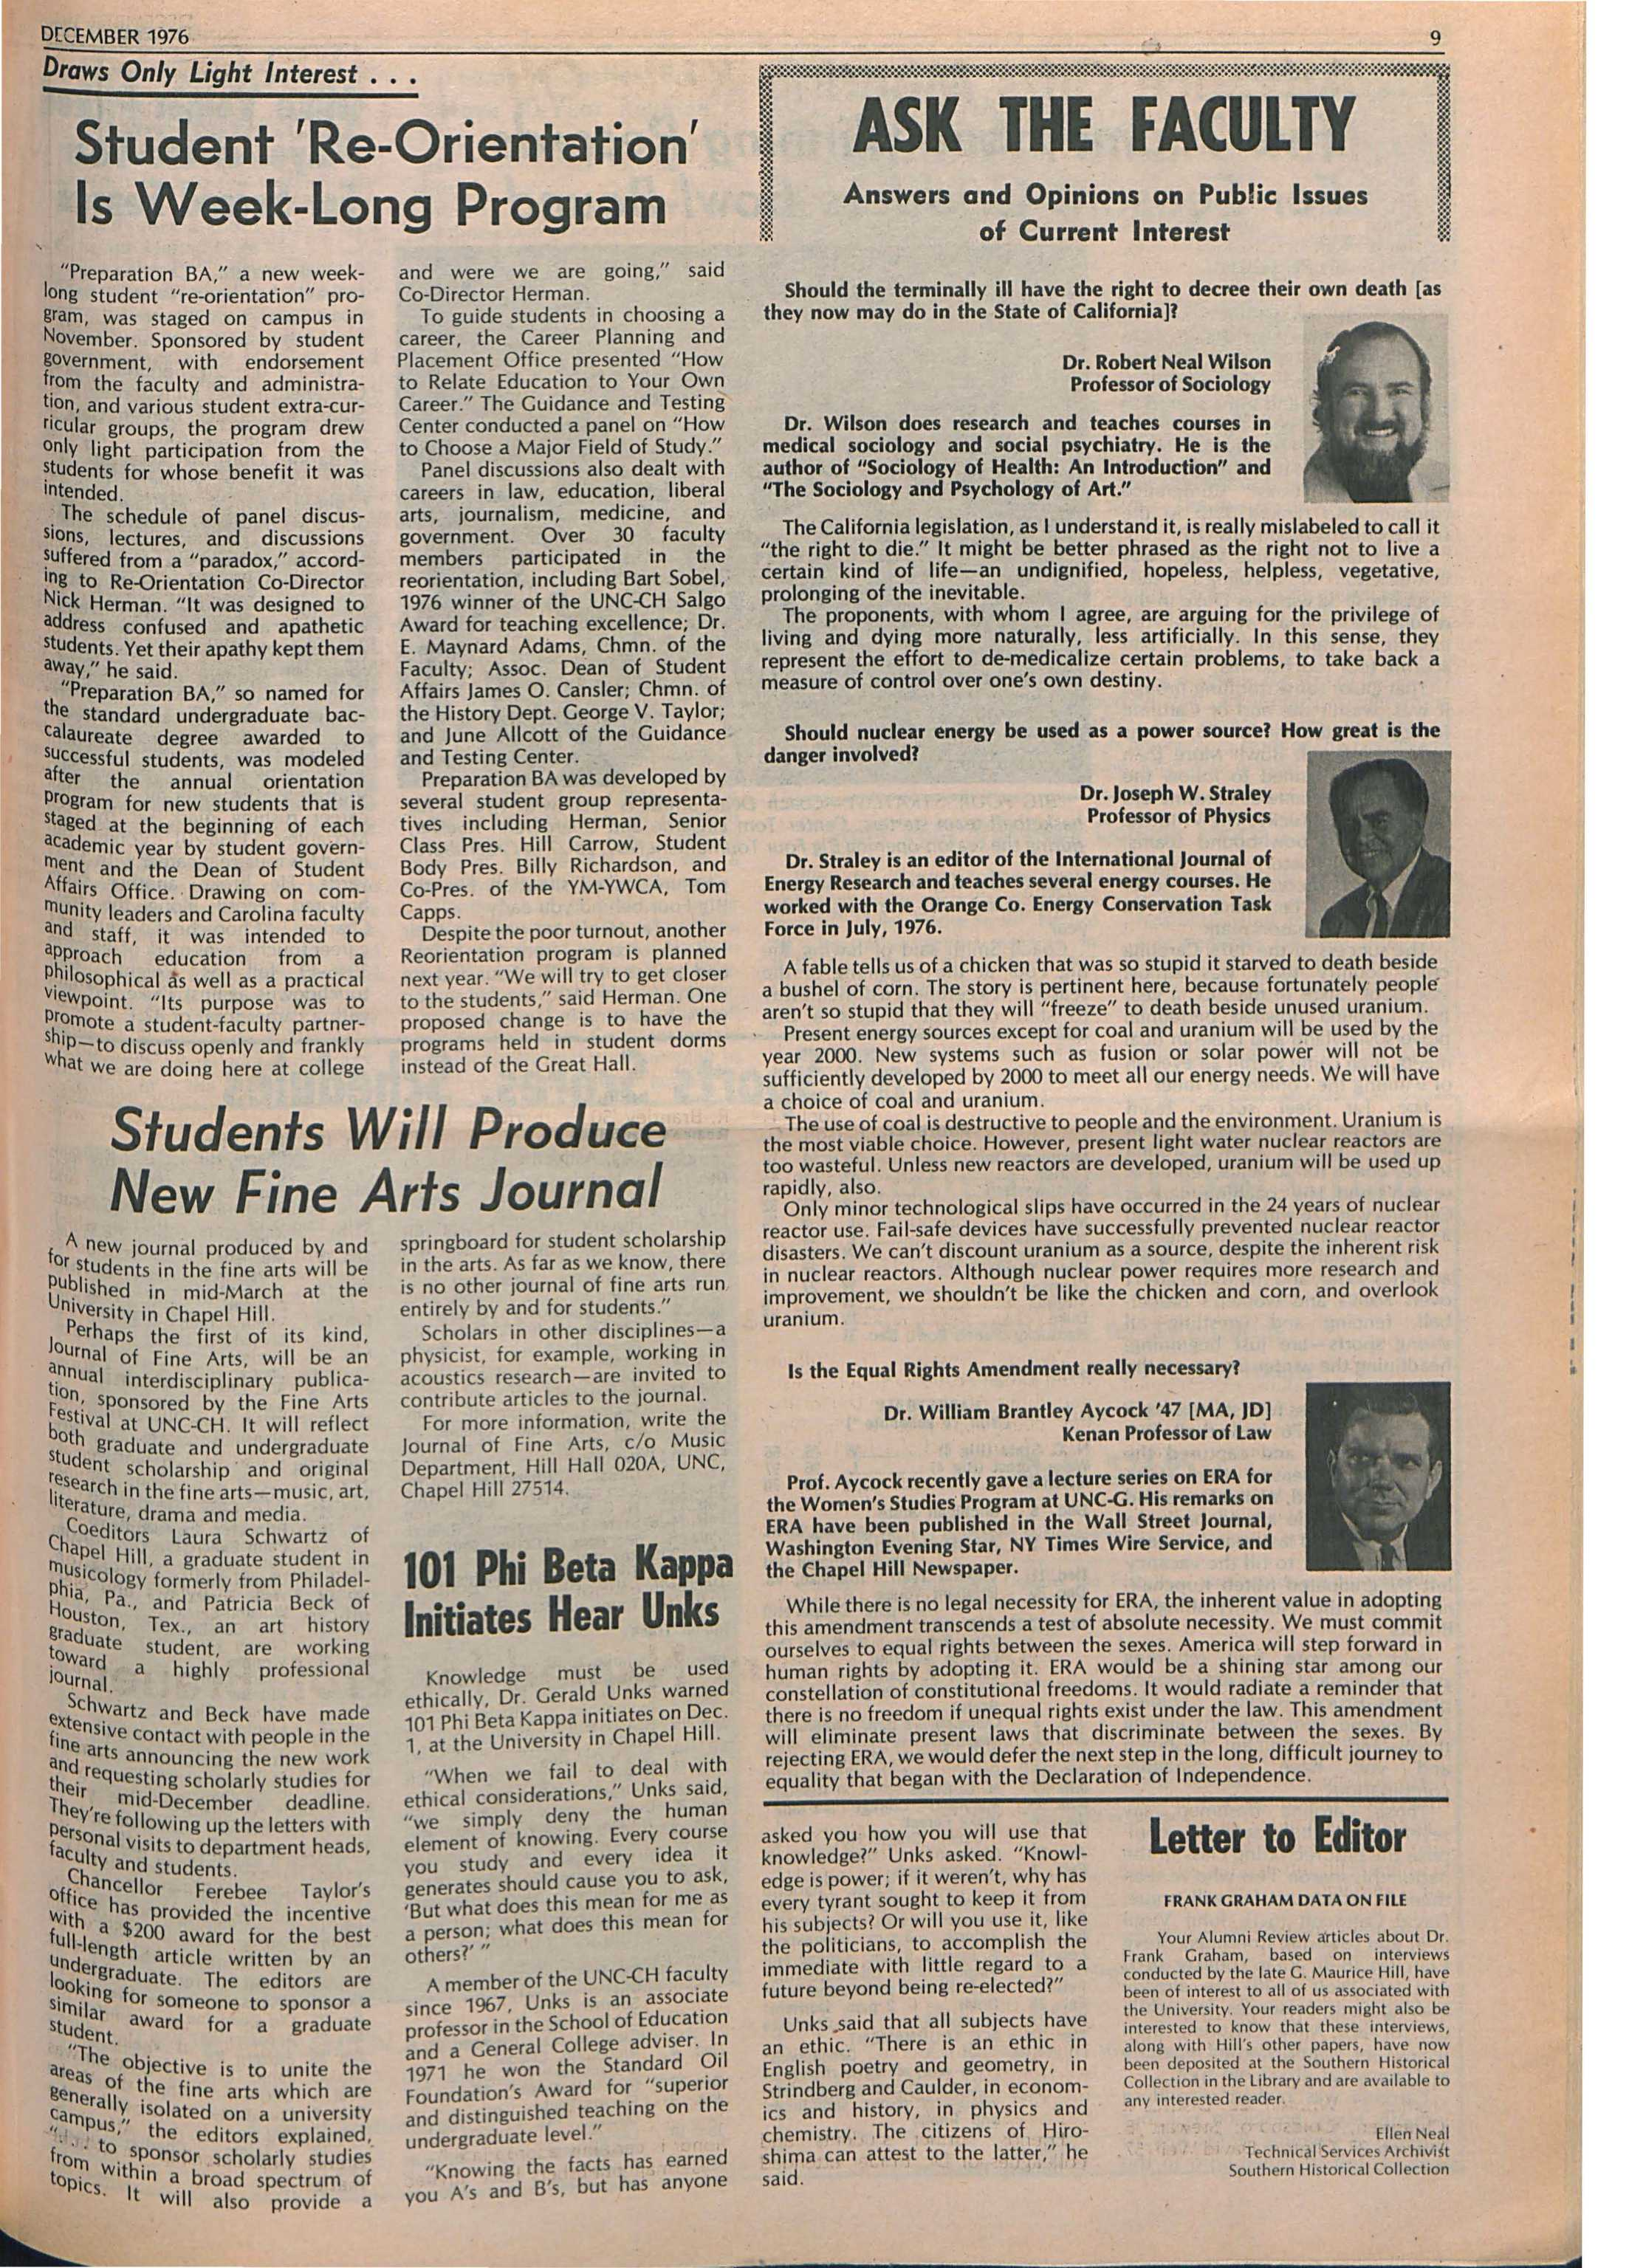 The University Report - December 1976 - page 9 7560c95372c70